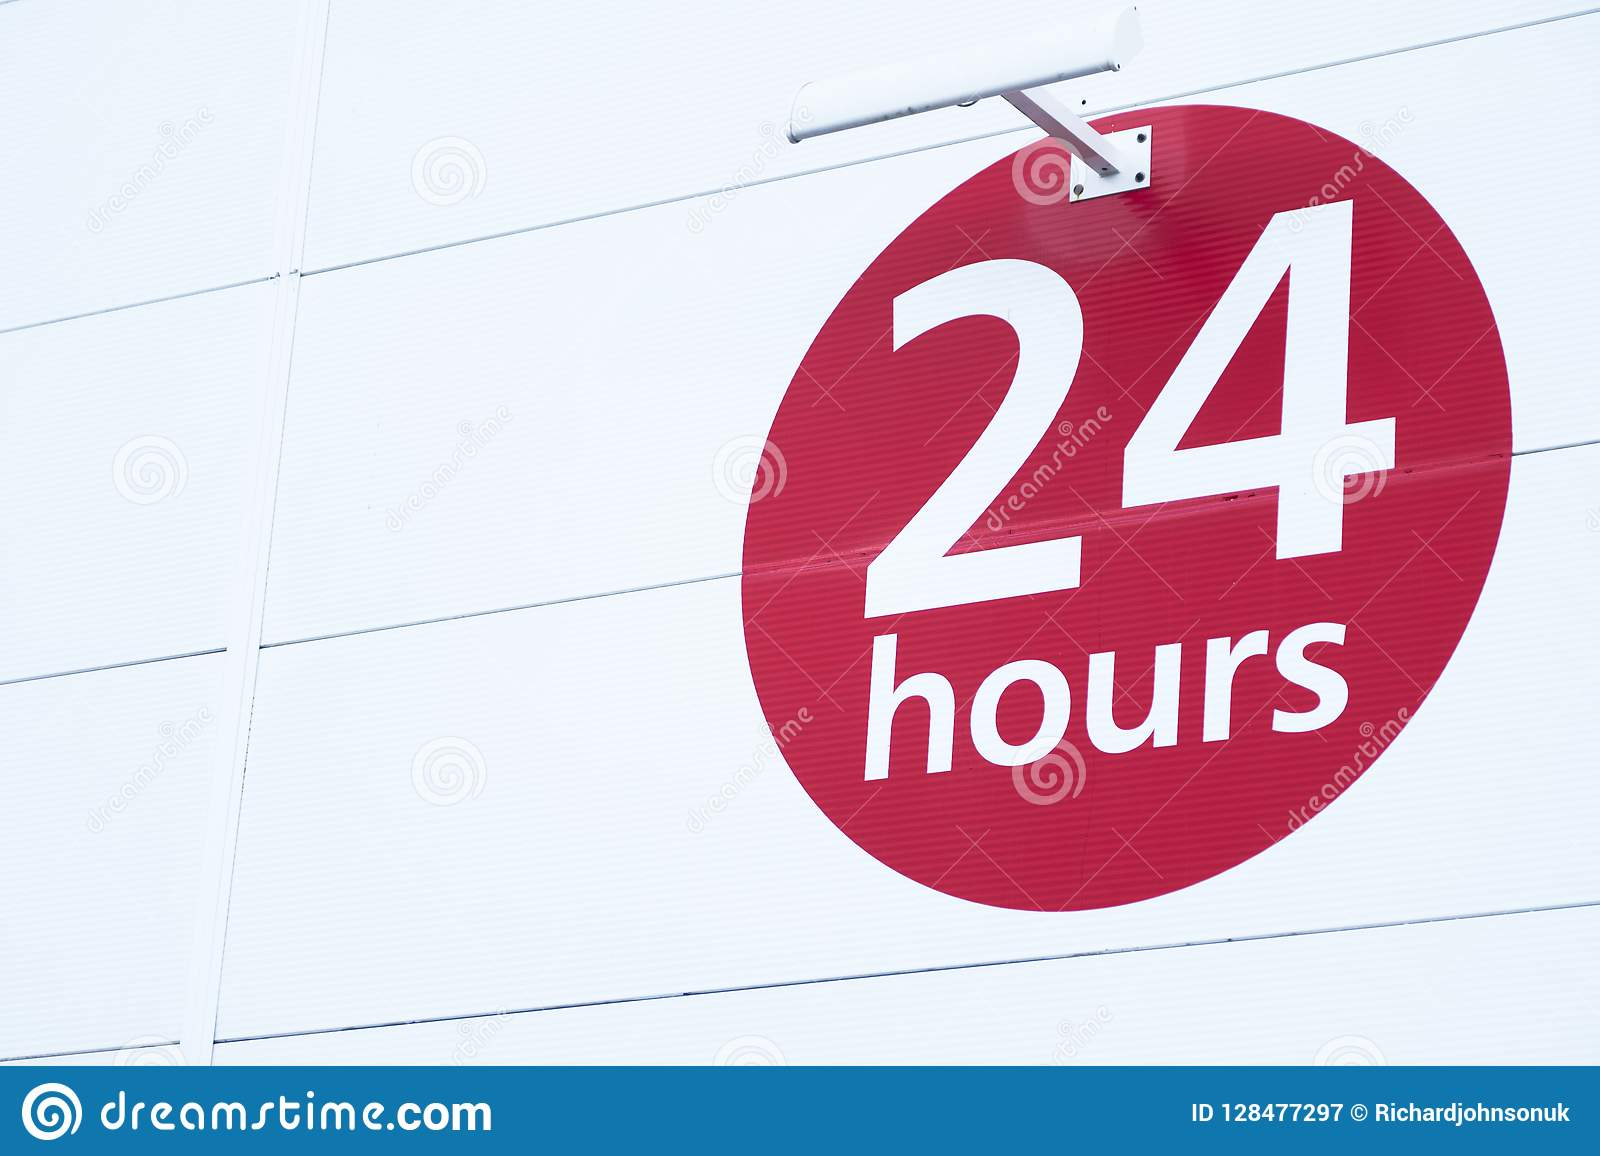 24 hours sign round red circle on white background for shop opening times